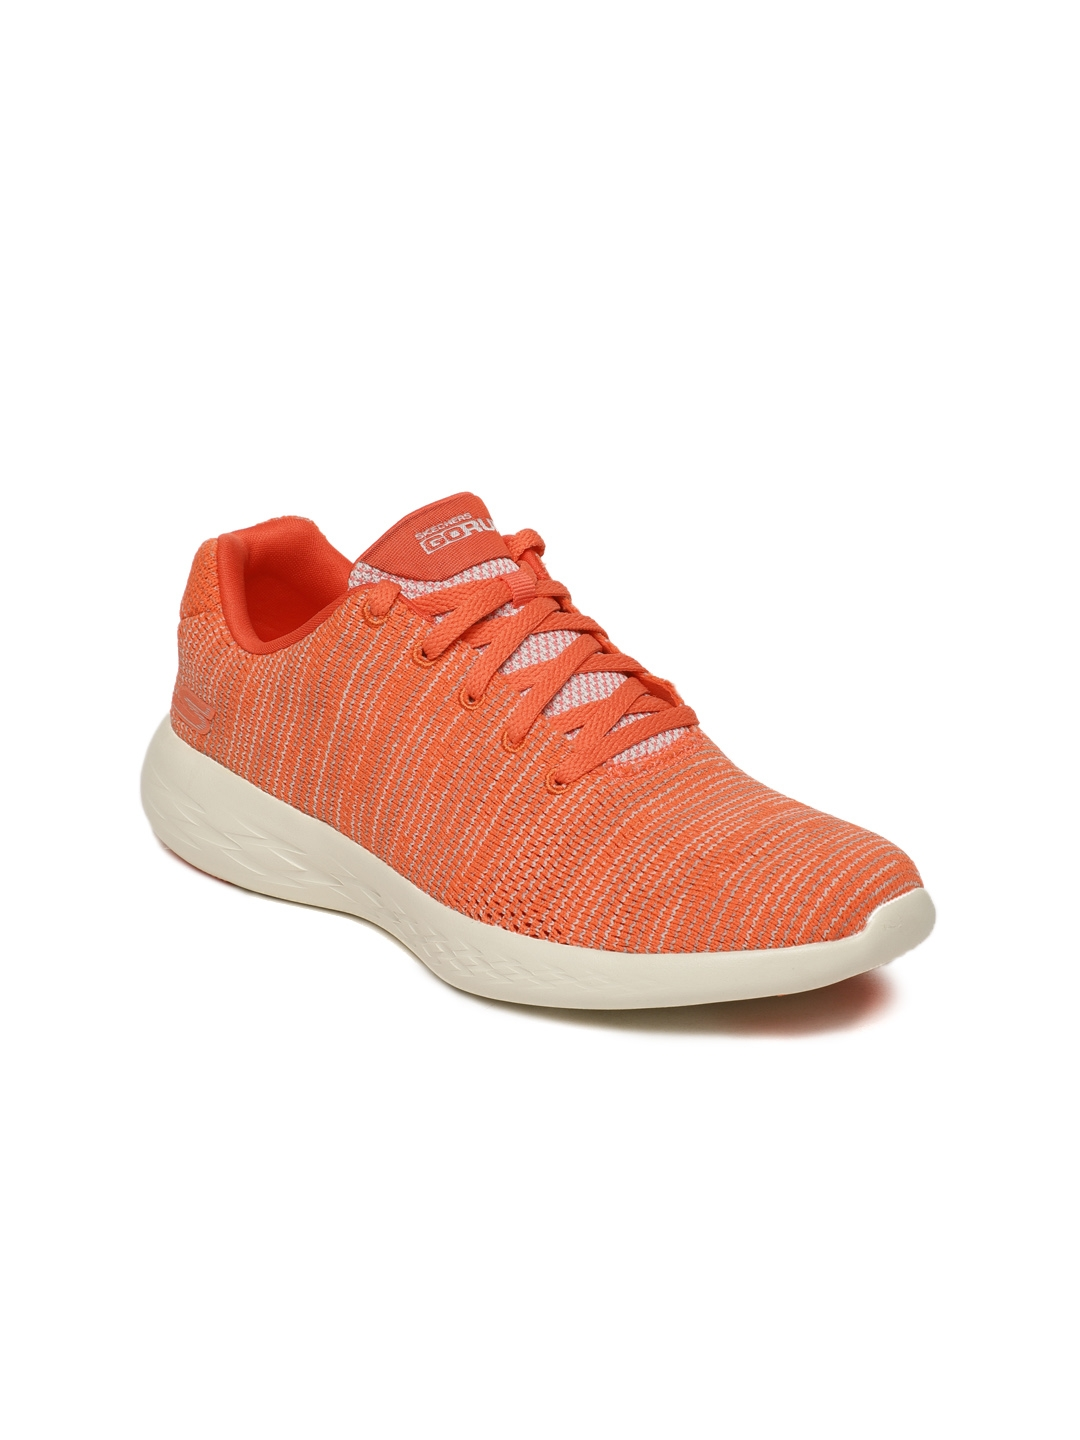 Skechers Women Coral GO RUN 600 - OBTAIN Running Shoes